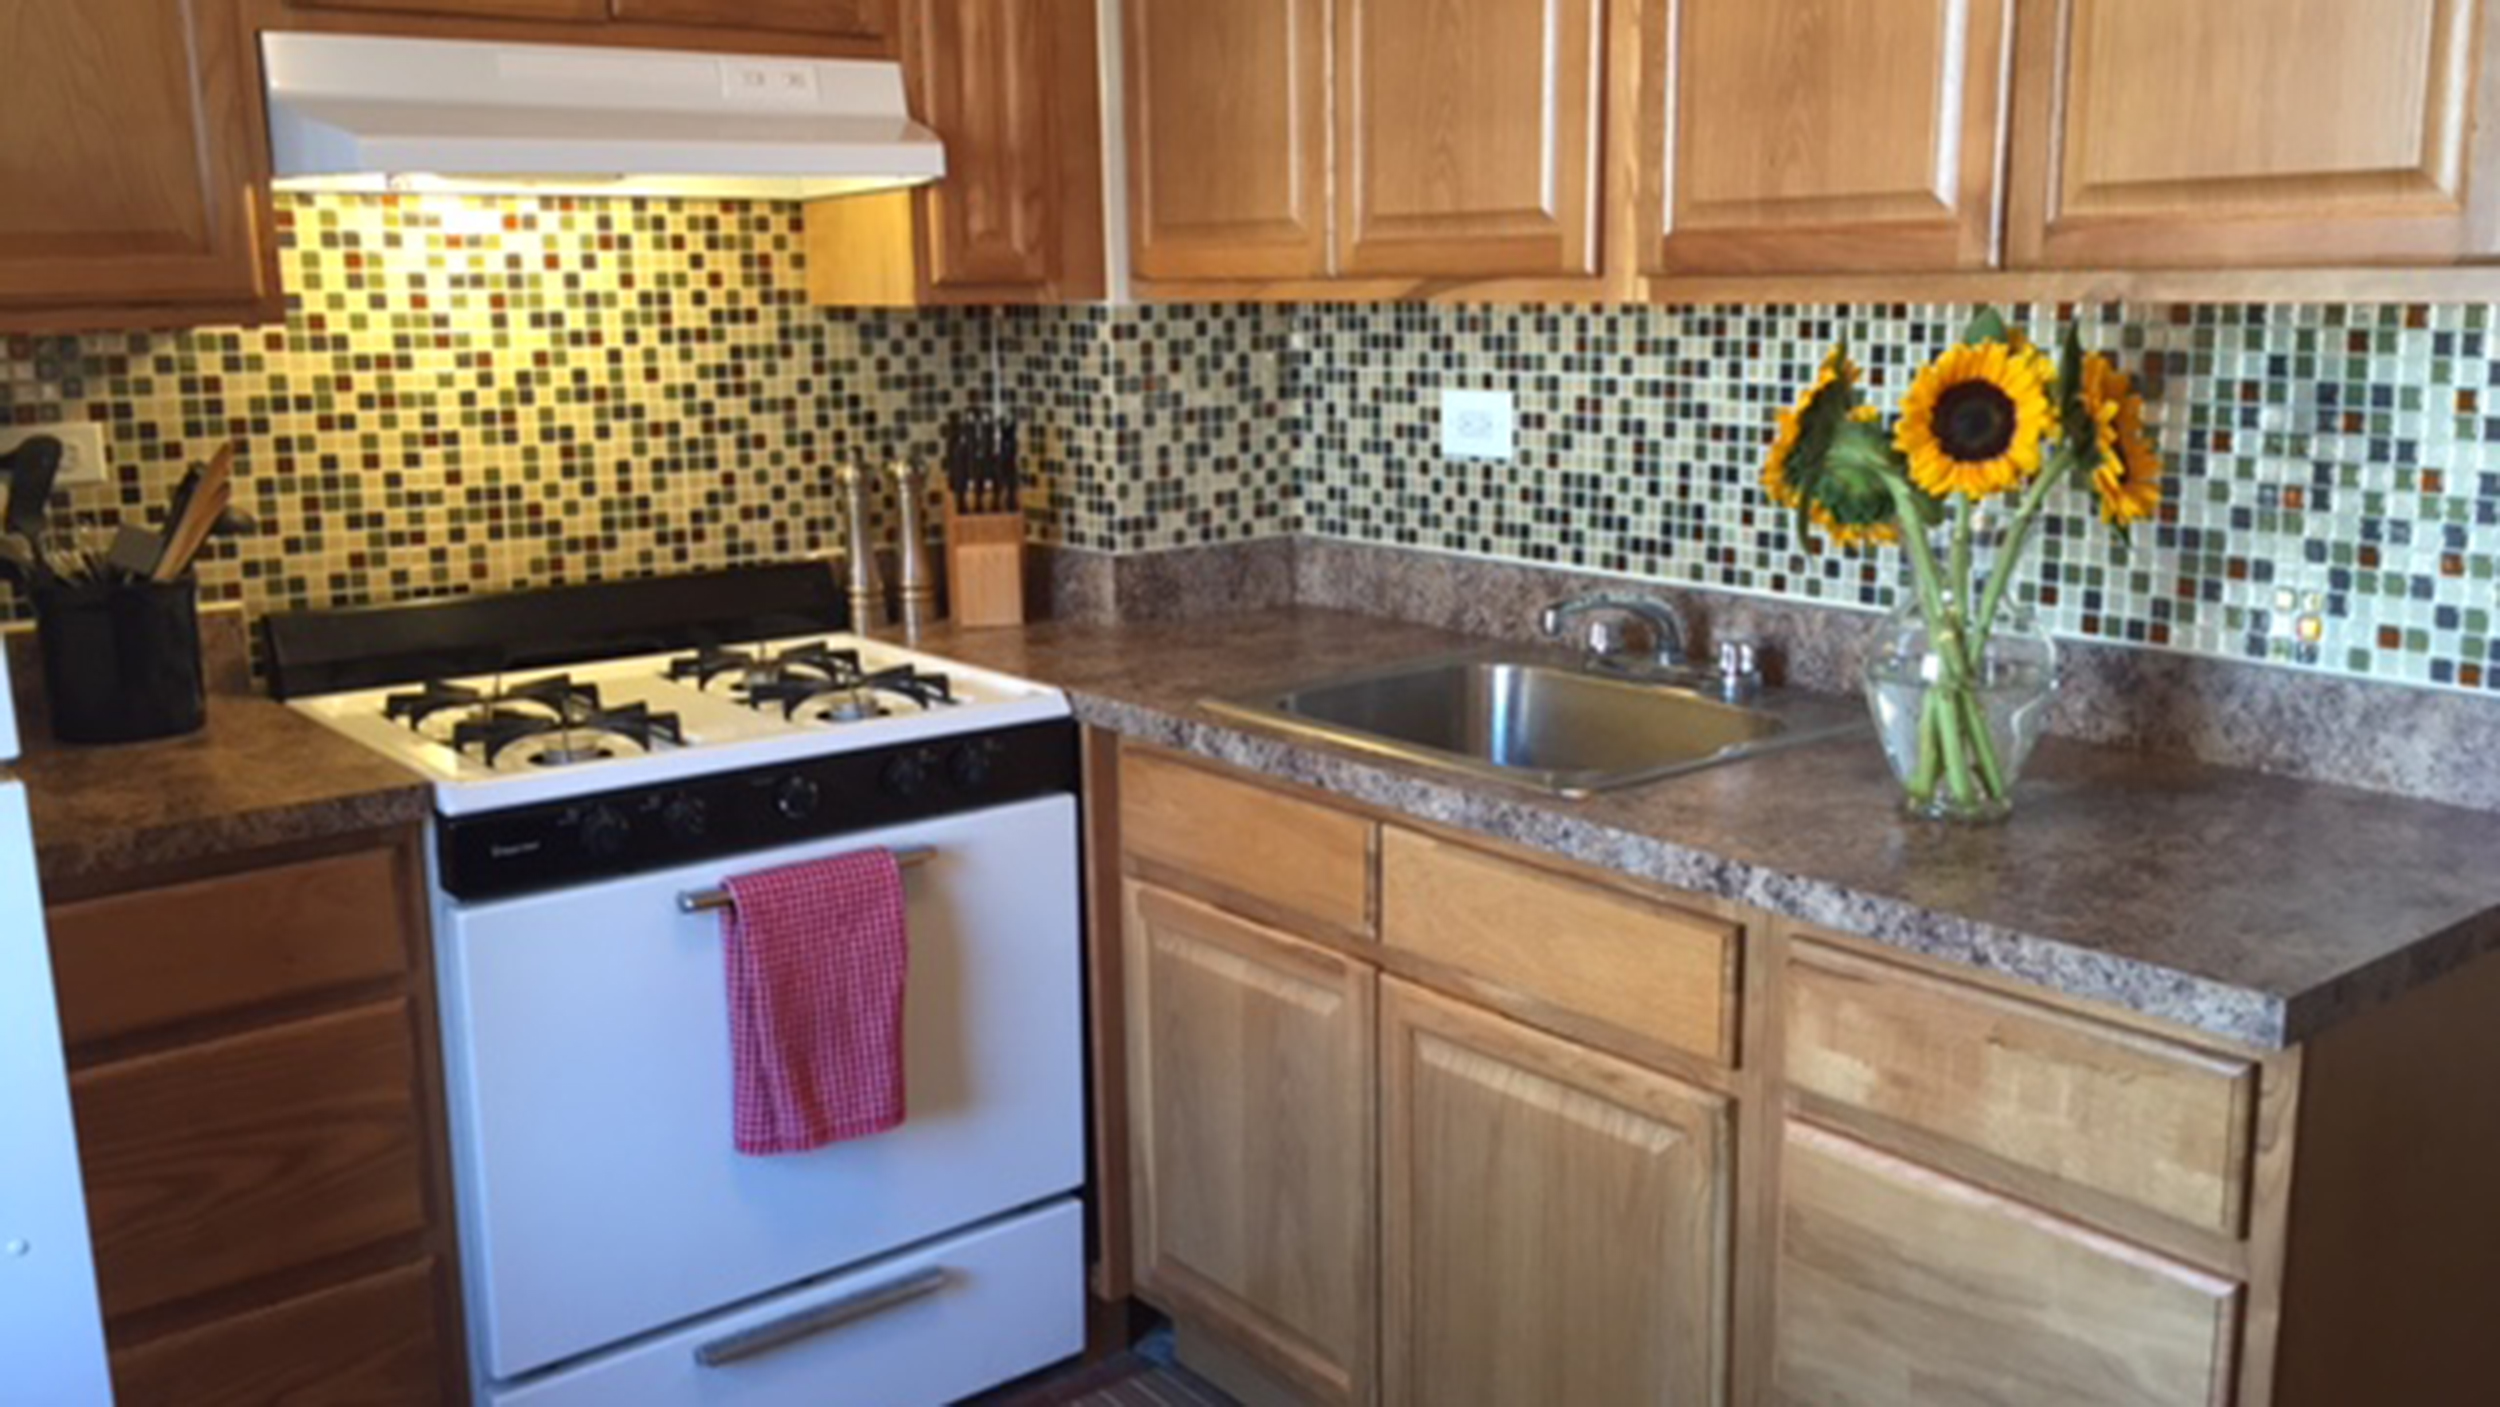 images of kitchen backsplash tile today tests temporary backsplash tiles from smart tiles today com 7622